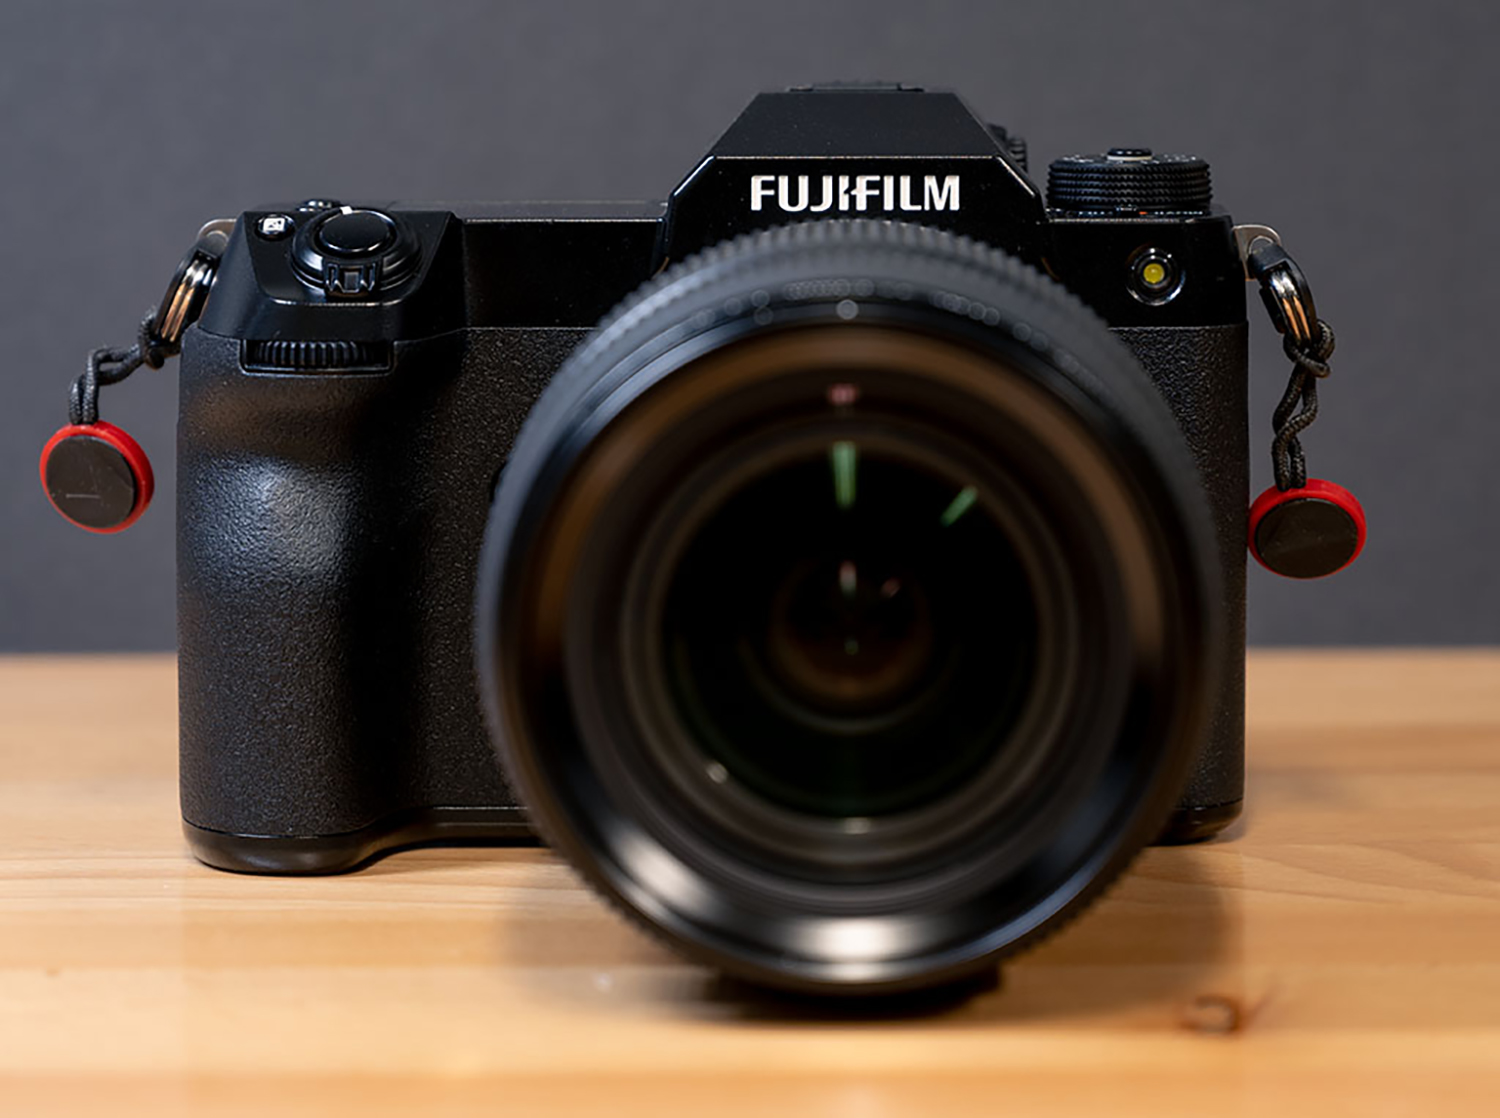 Hands-on photo of the Fujifilm GFX100S